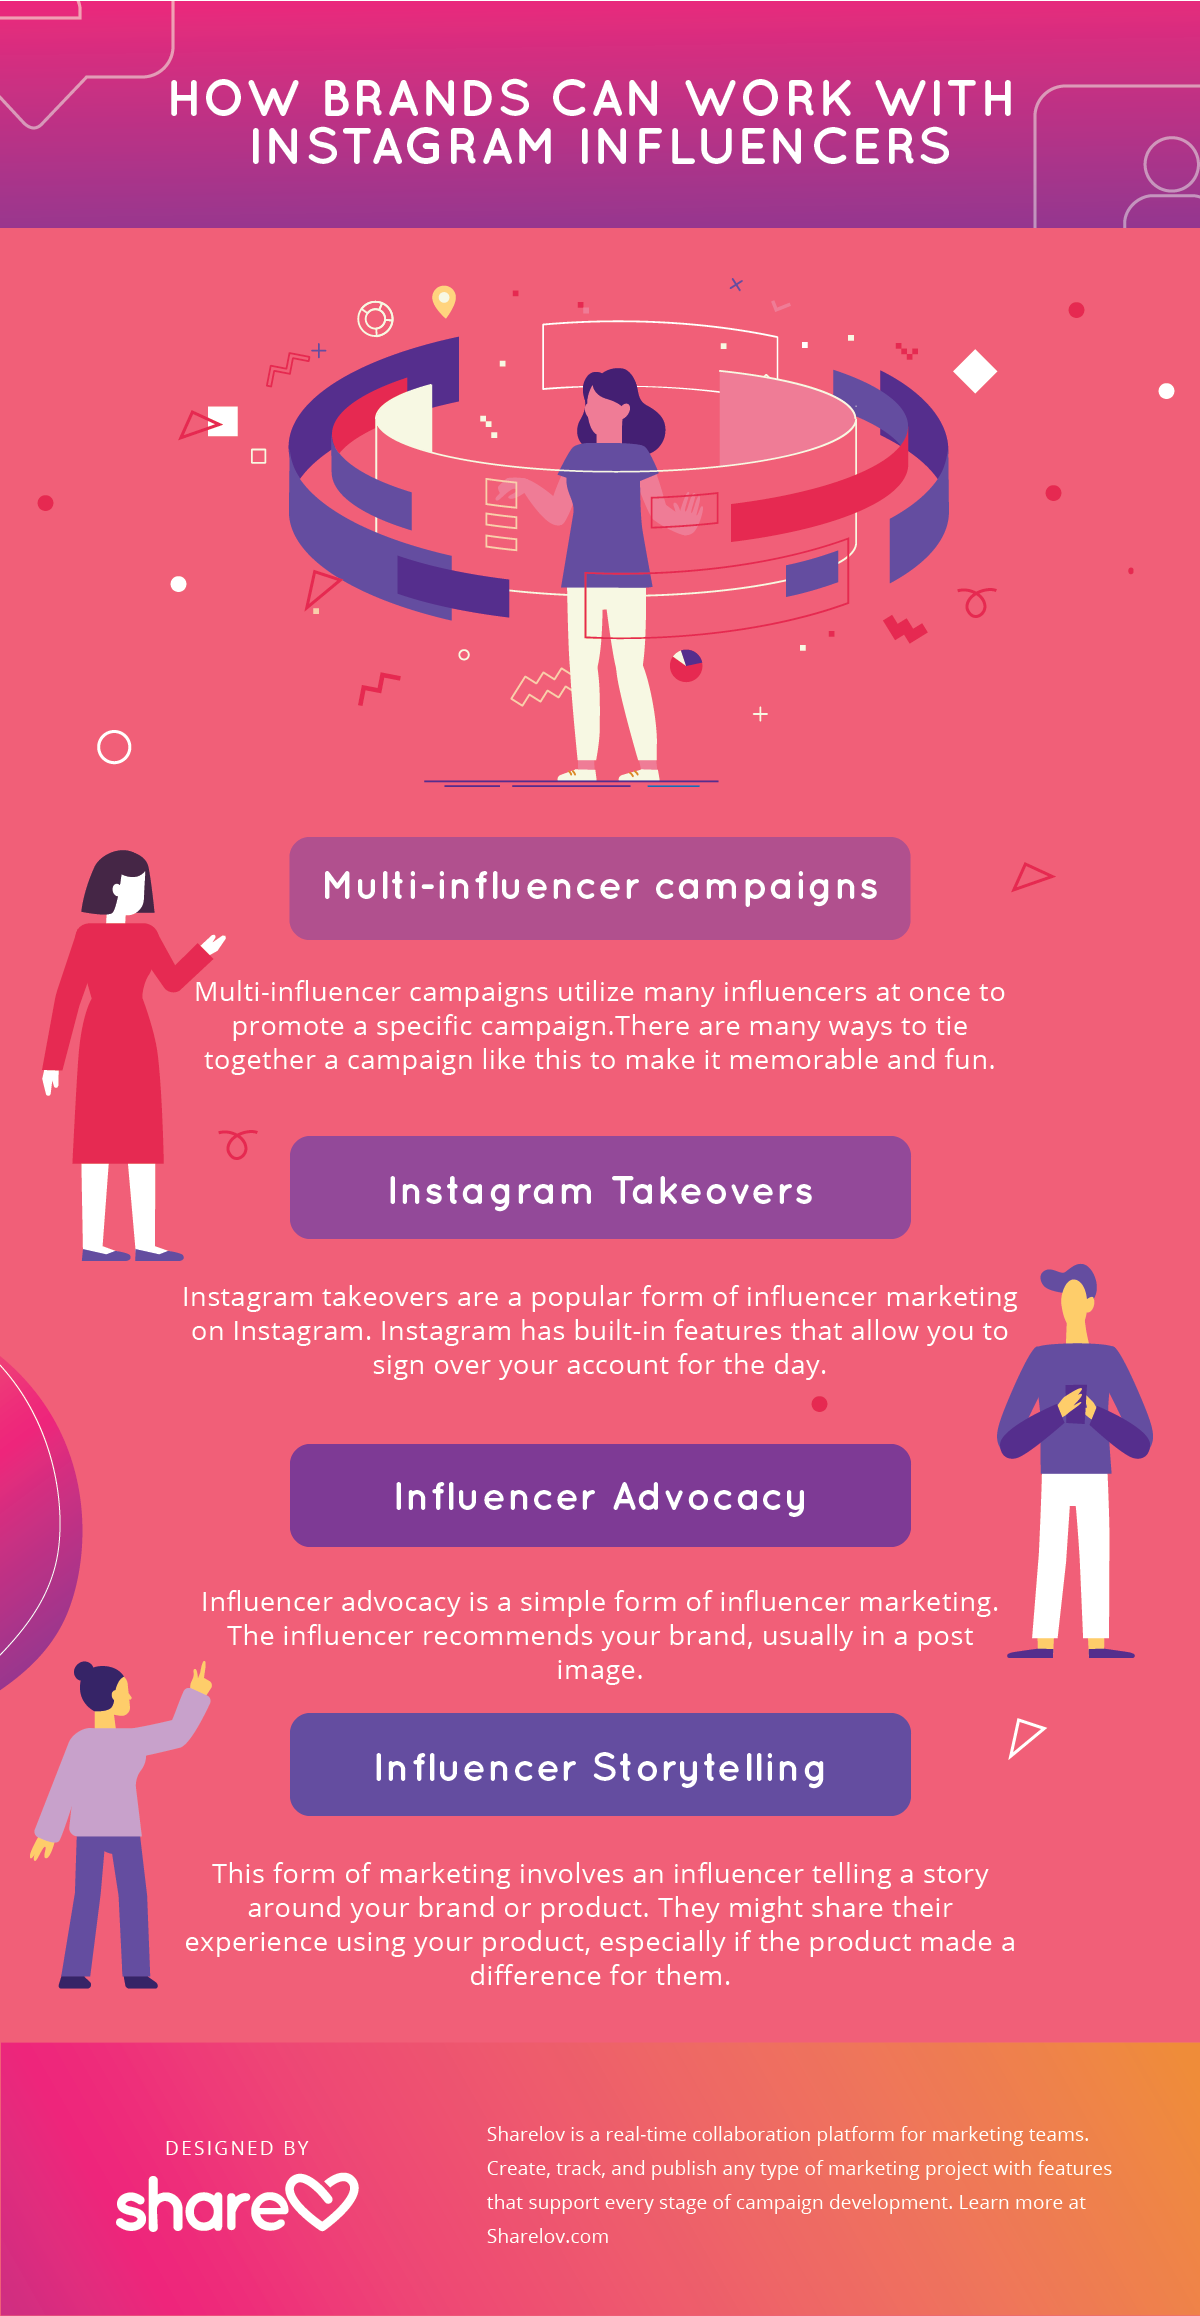 """HOW TO WORK WITH INFLUENCERS"" INFOGRAPHIC"